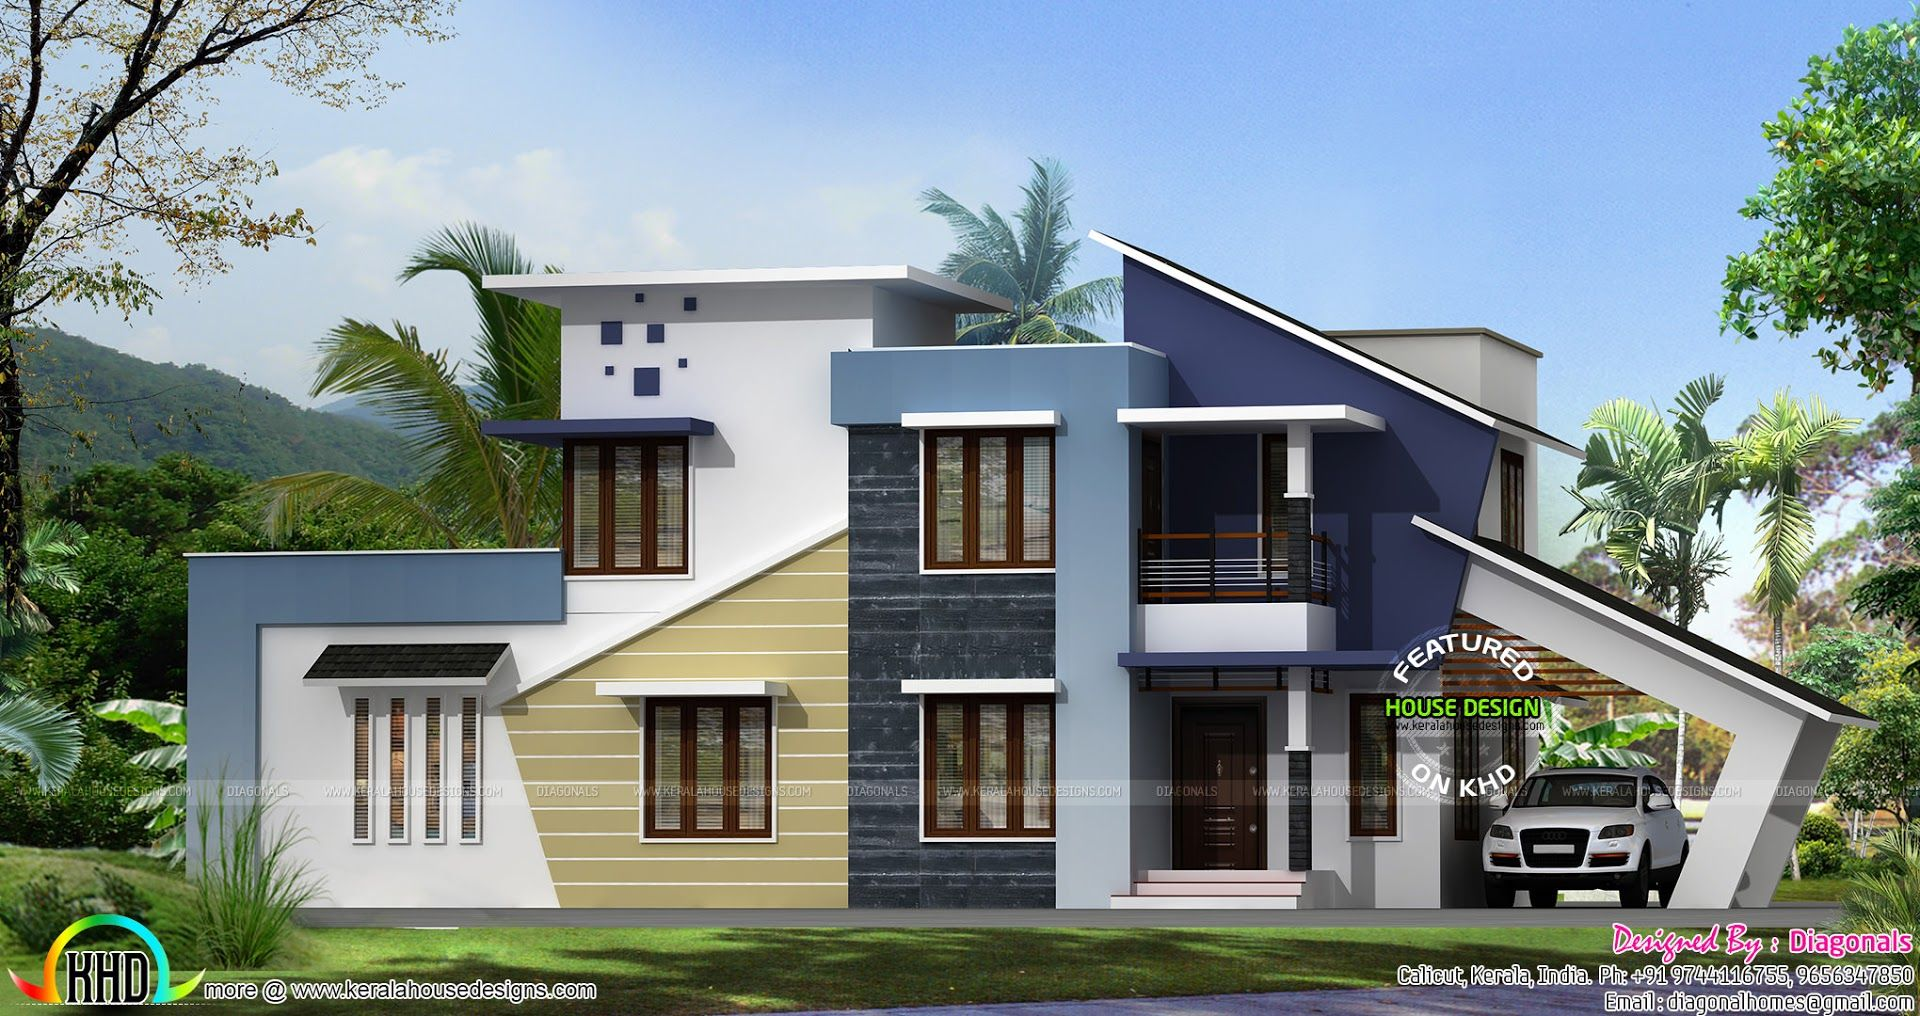 New Generation Home Design House Architecture Design Modern Contemporary House Plans Simple House Design